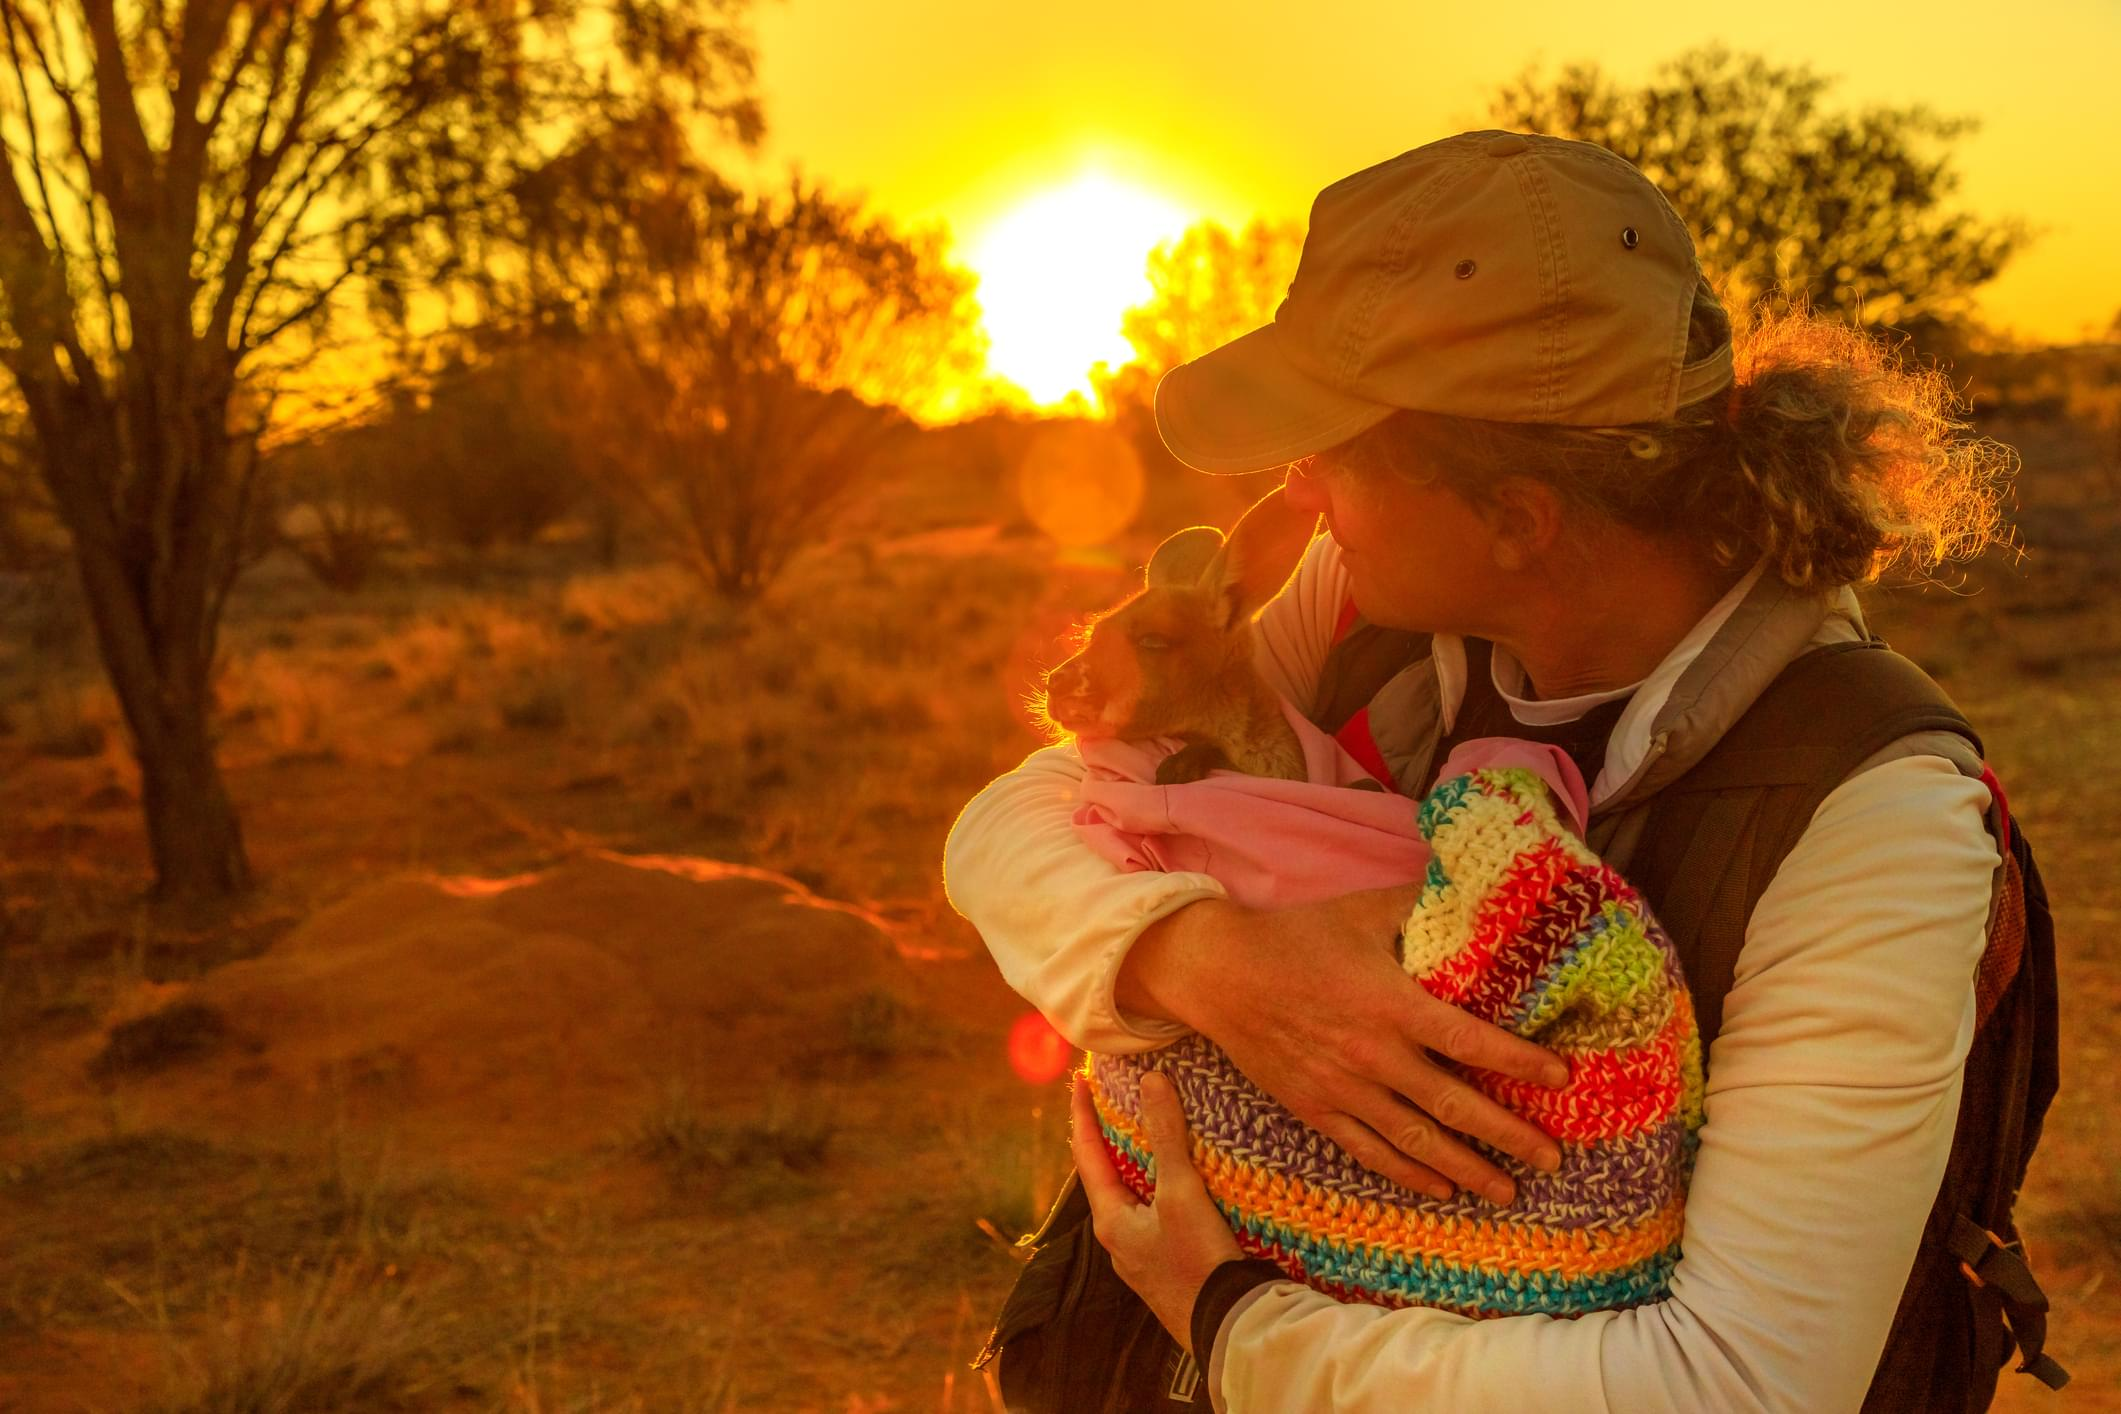 Help animals suffering from the Australian wildfires